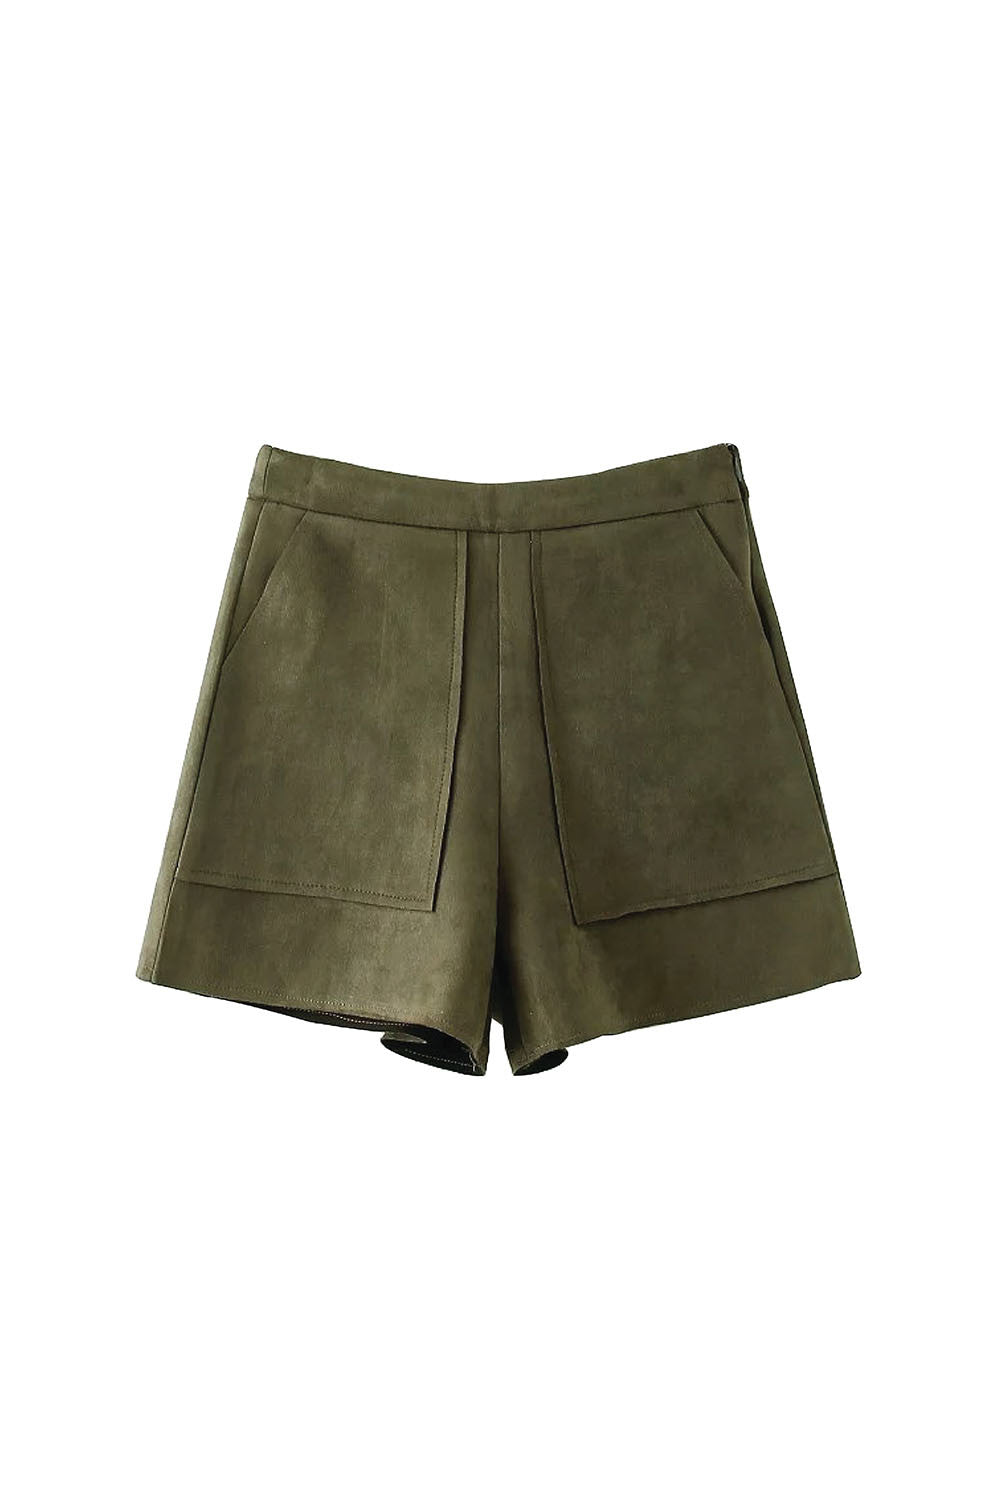 'Gizelle' Faux Suede Leather Shorts from Goodnight Macaroon